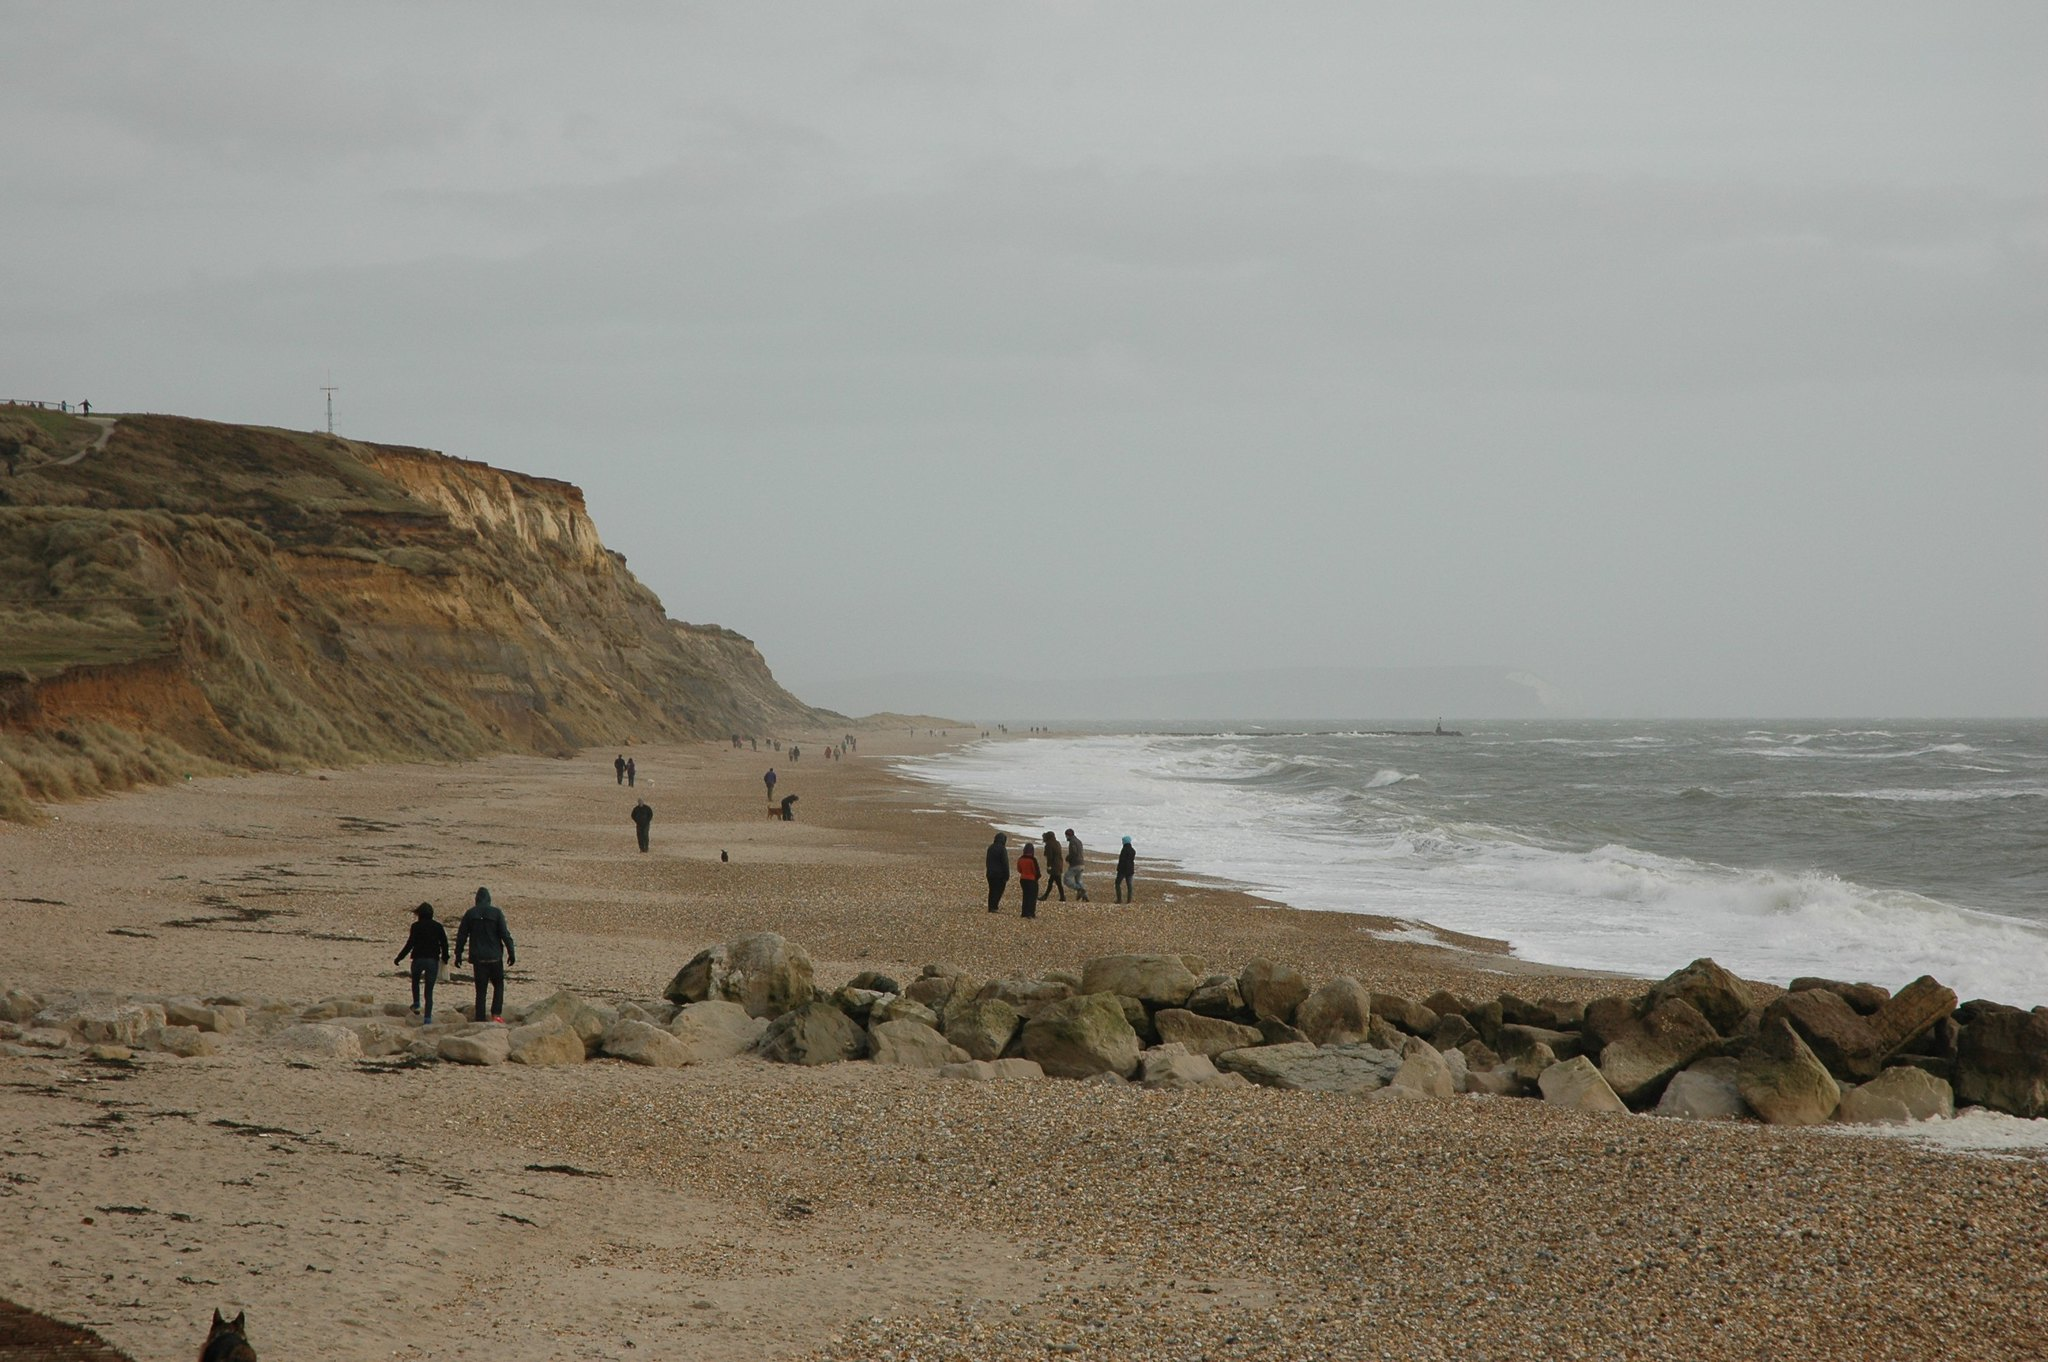 People on the beach with a clifftop